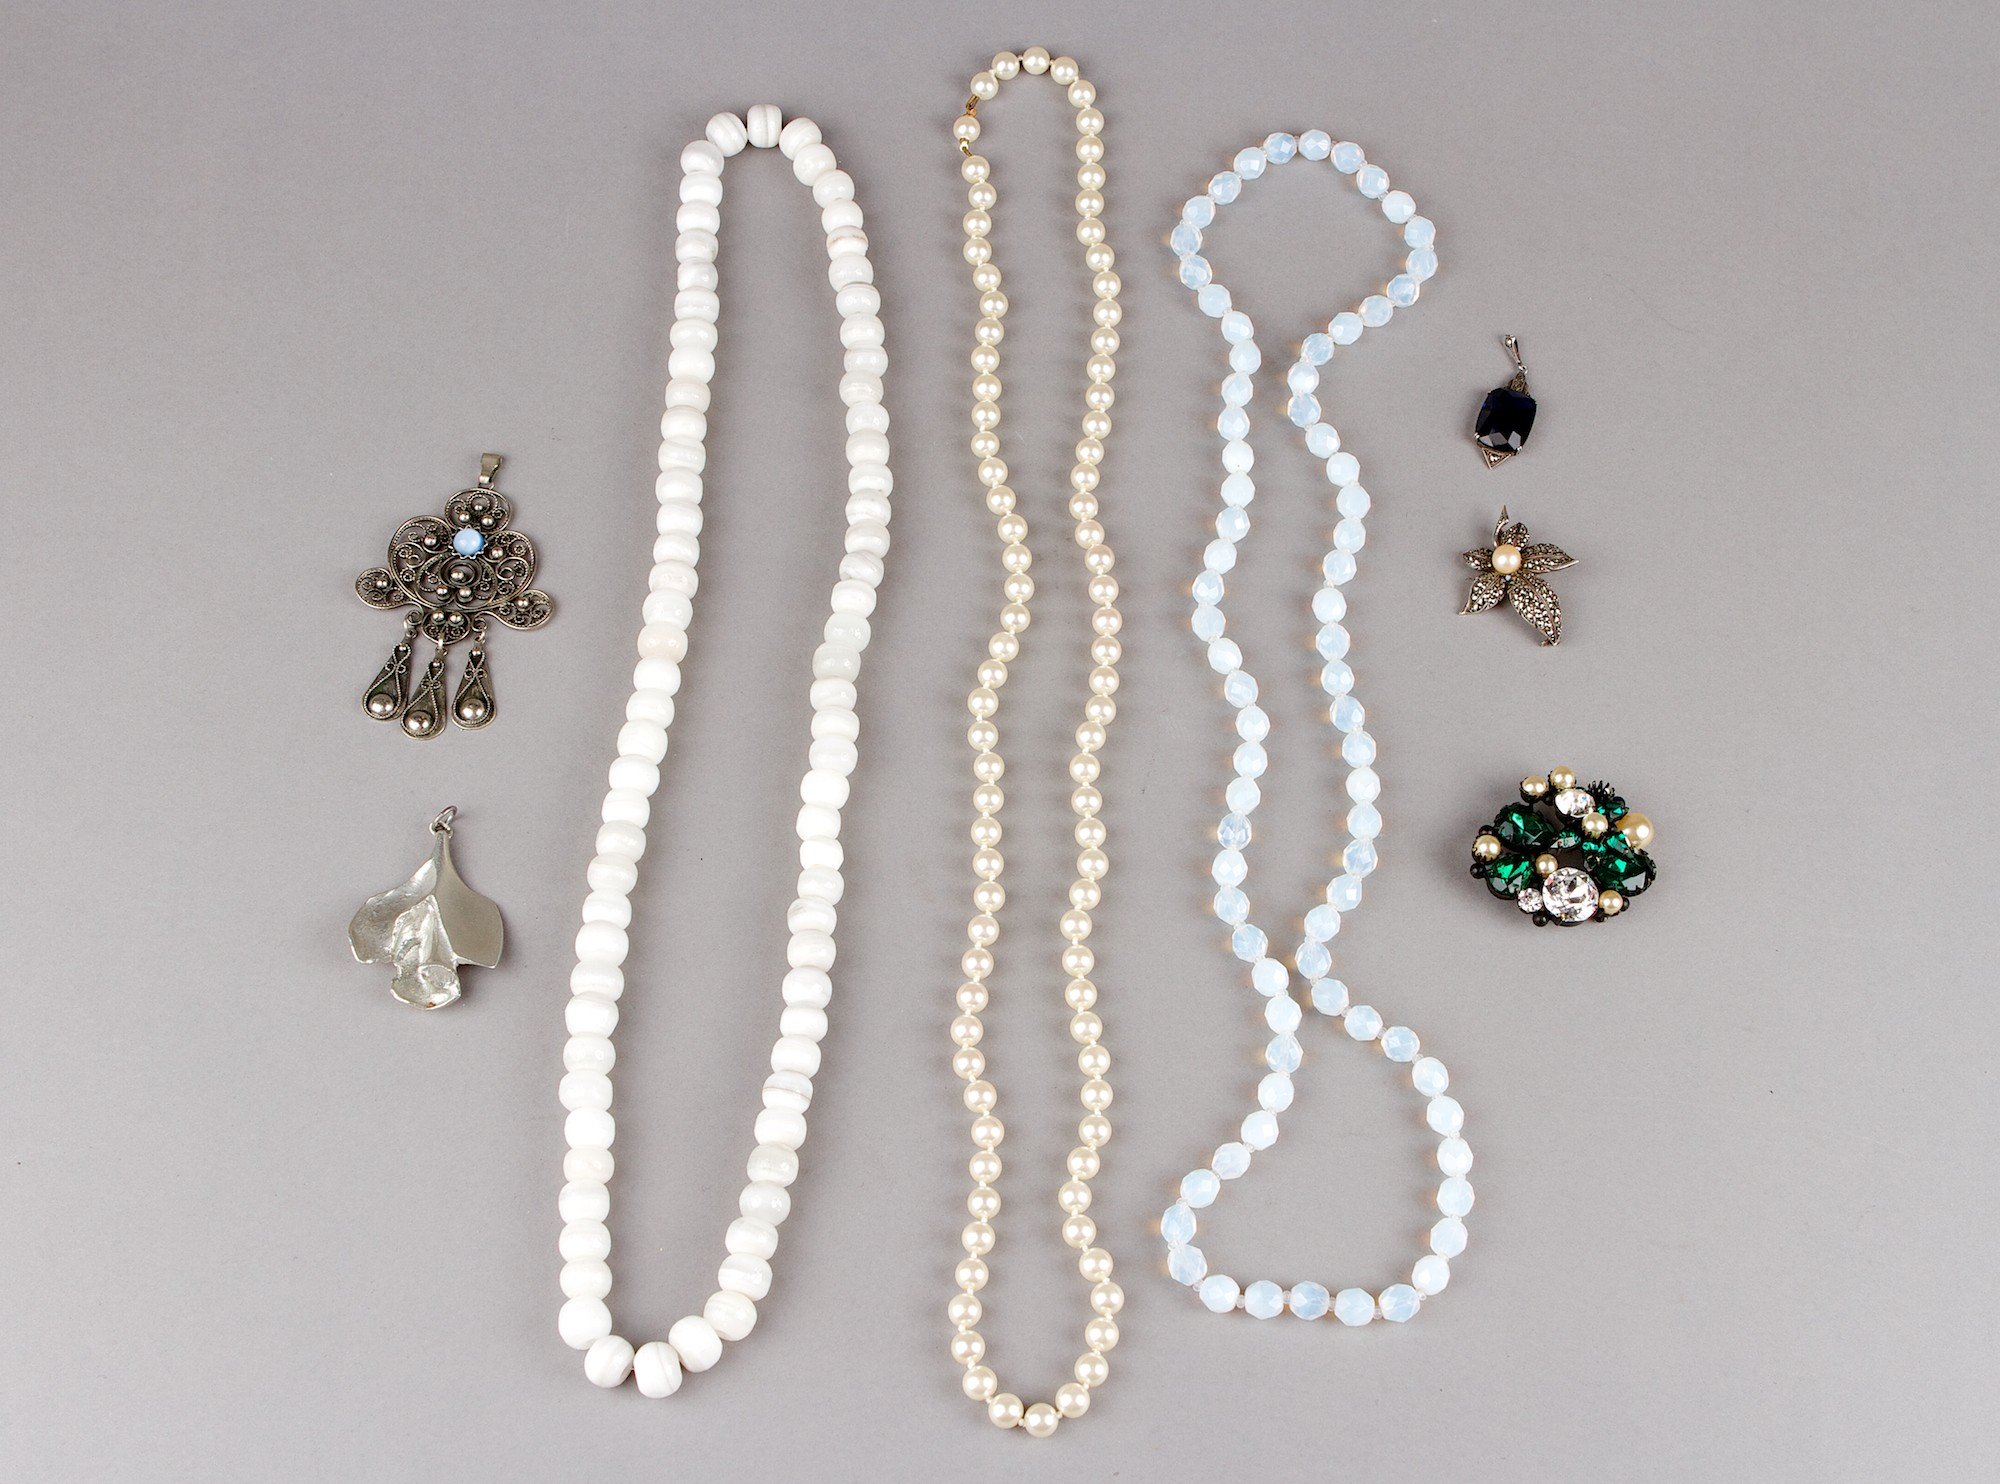 A set of jewelry